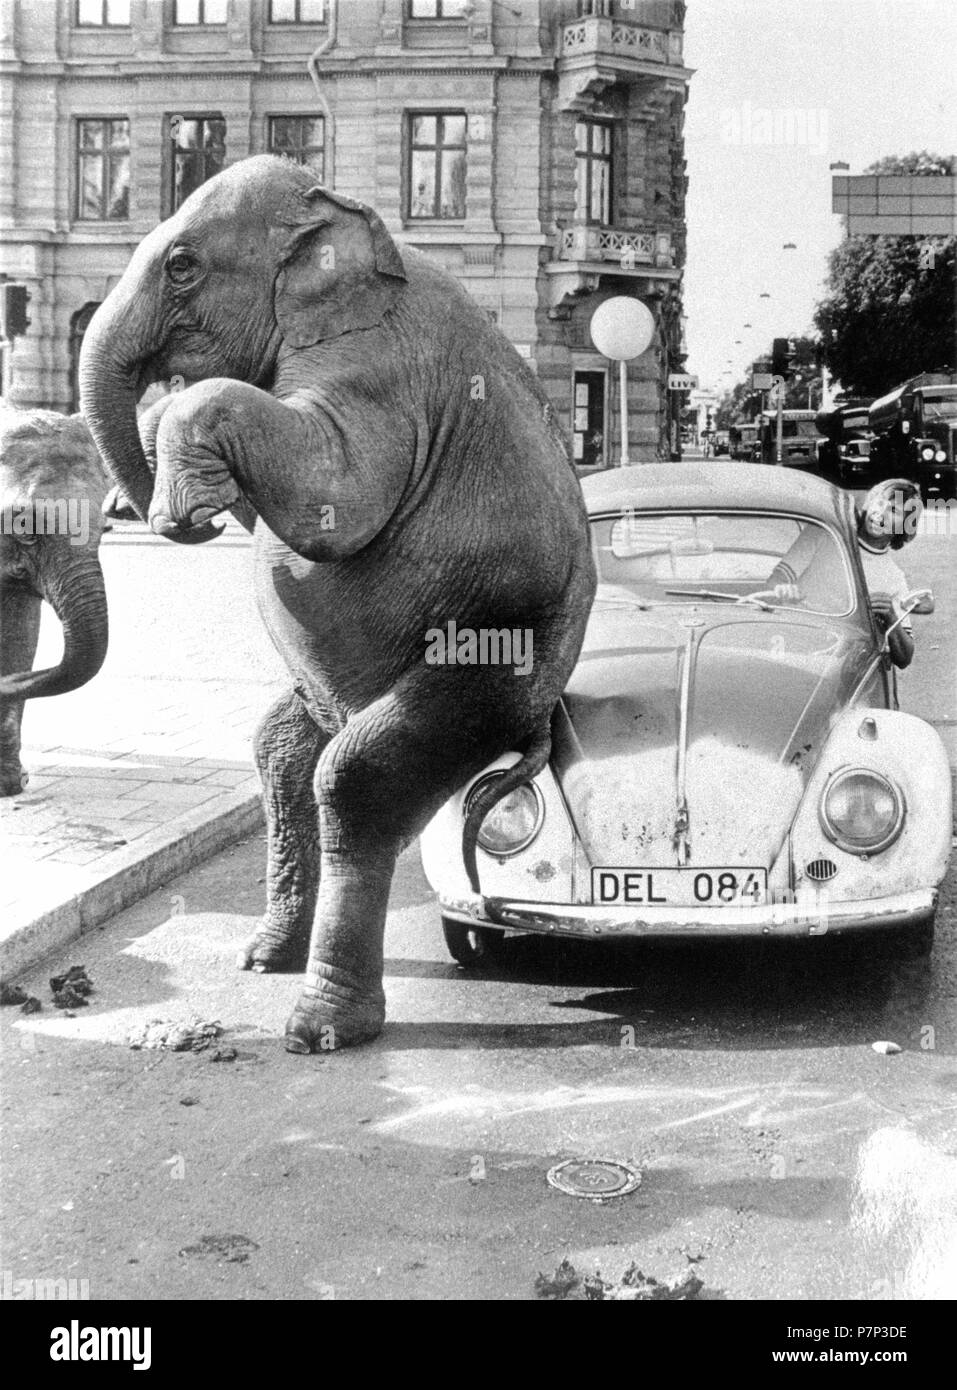 Elephant on VW, ca. 1950, exact place unknown, Cuba, Caribbean, Central America - Stock Image